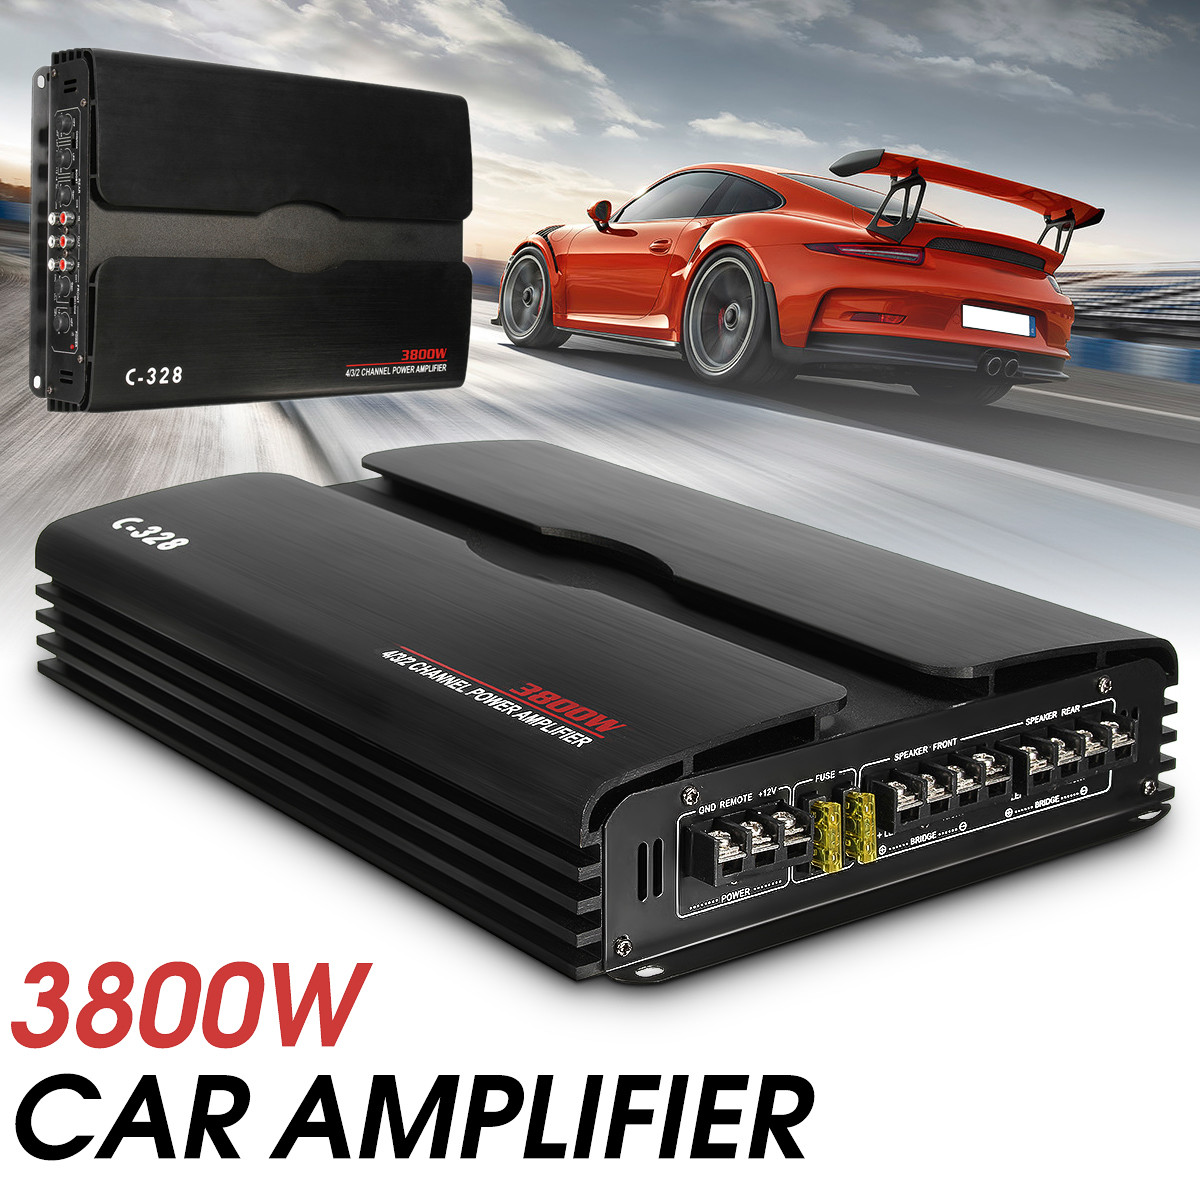 3800W Multichannel Aluminum Alloy Car Amplifier Speaker Powerful Car Audio Power Amplifier Subwoofer Car Truck Stereo Amplifier motorcycle capacity luagge side bag leather saddle bag dual sport bike chopper